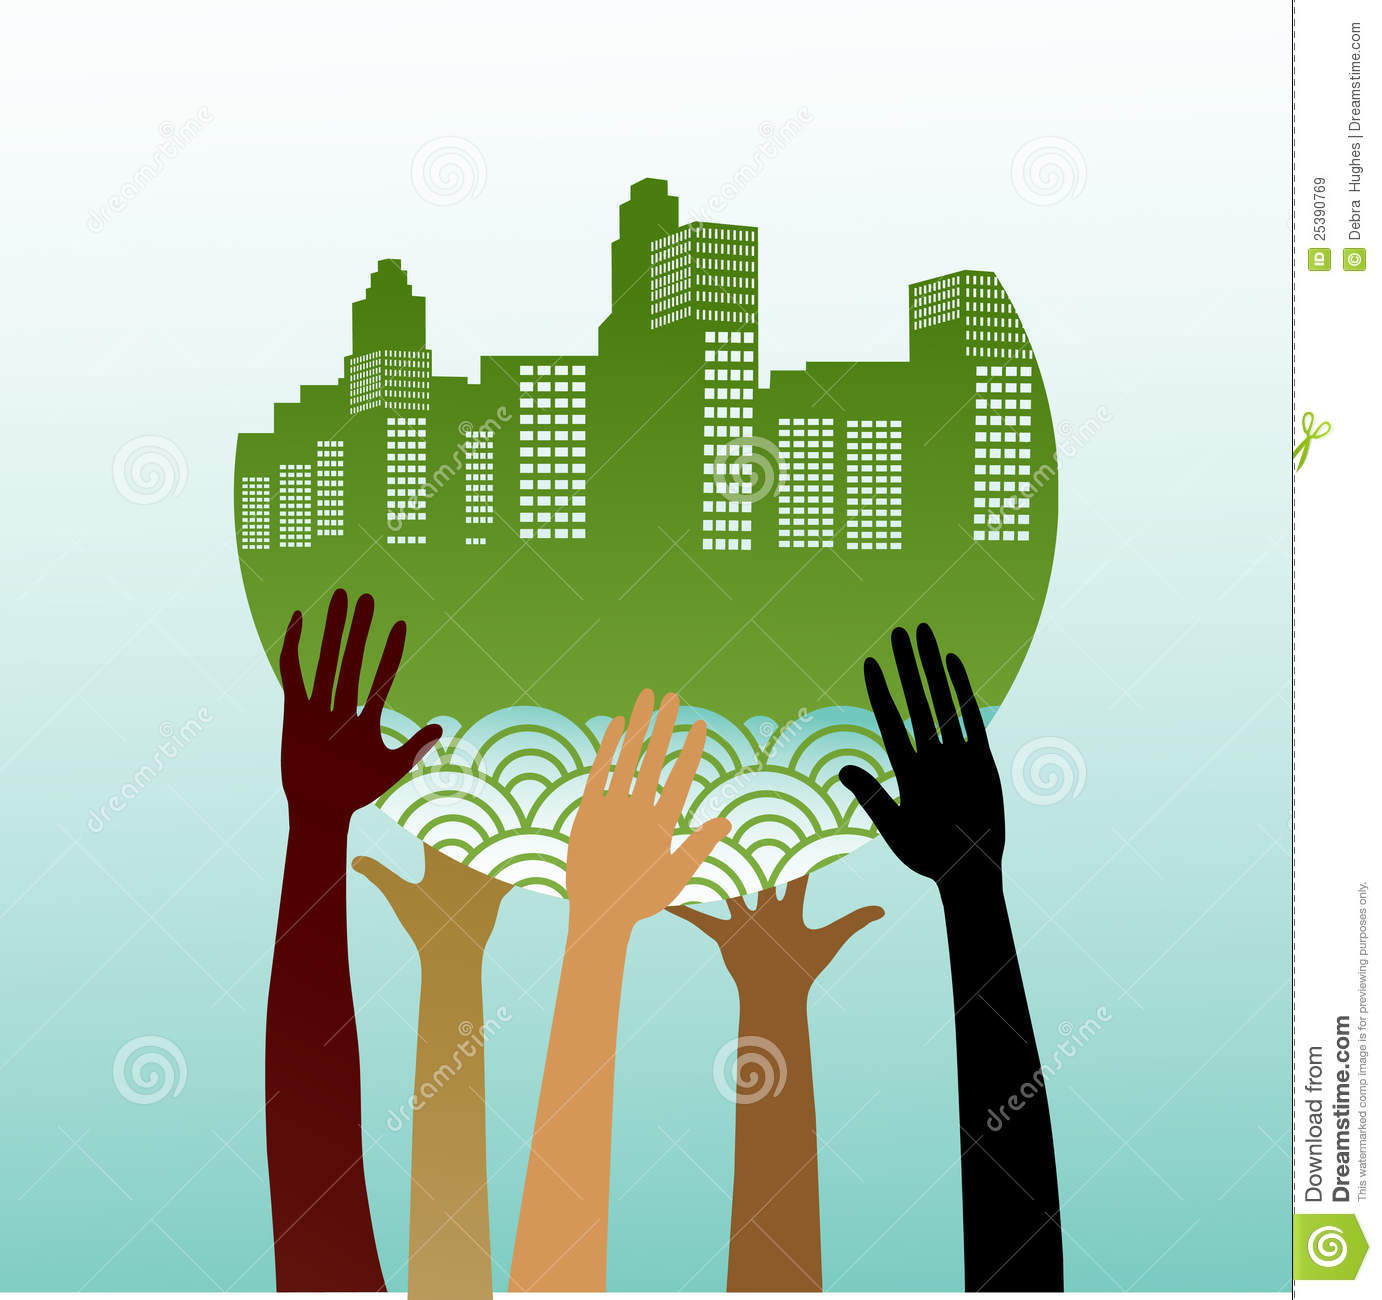 Stylized hands holding green city